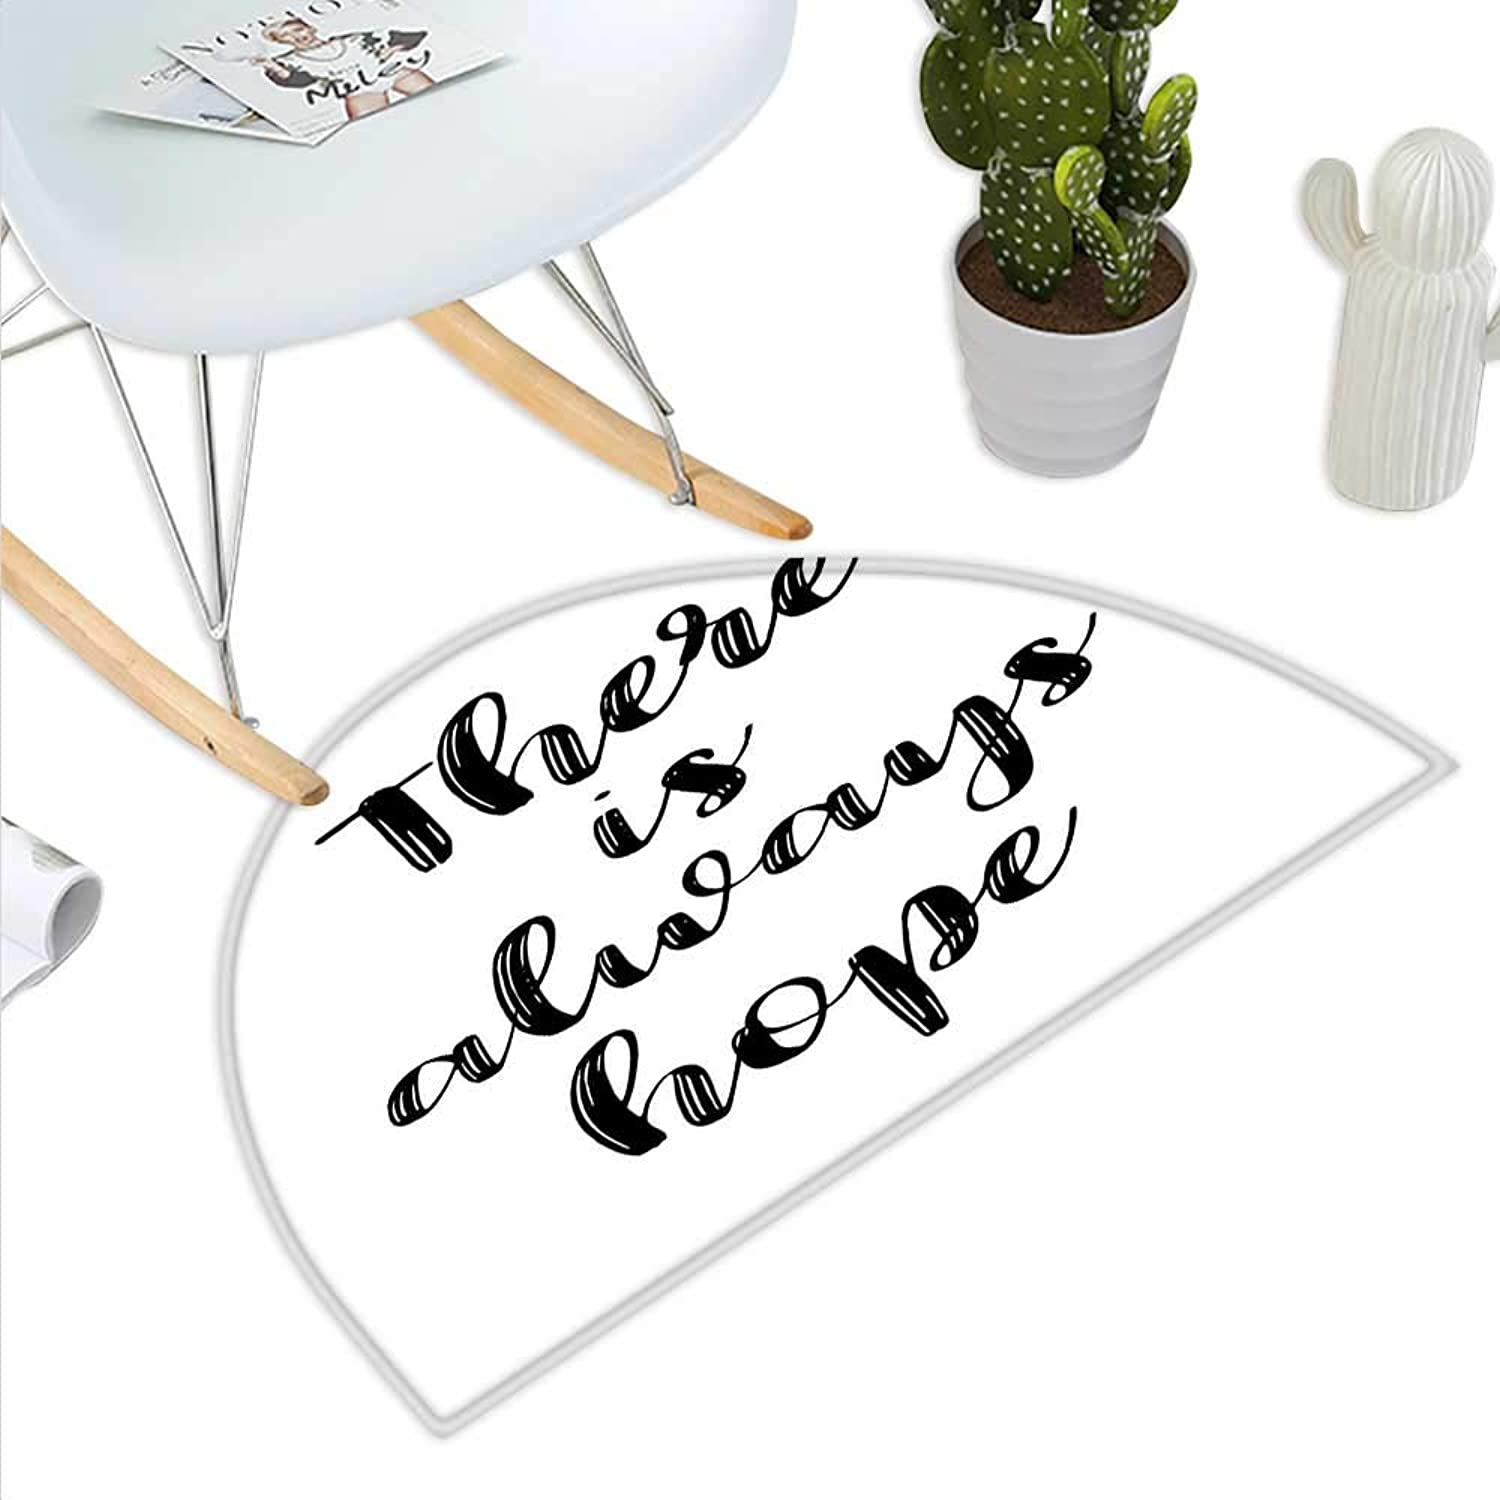 Hope Semicircle Doormat There is Always Hope Hand Lettering Style Illustration Inspirational Vintage Halfmoon doormats H 43.3  xD 64.9  Black and White